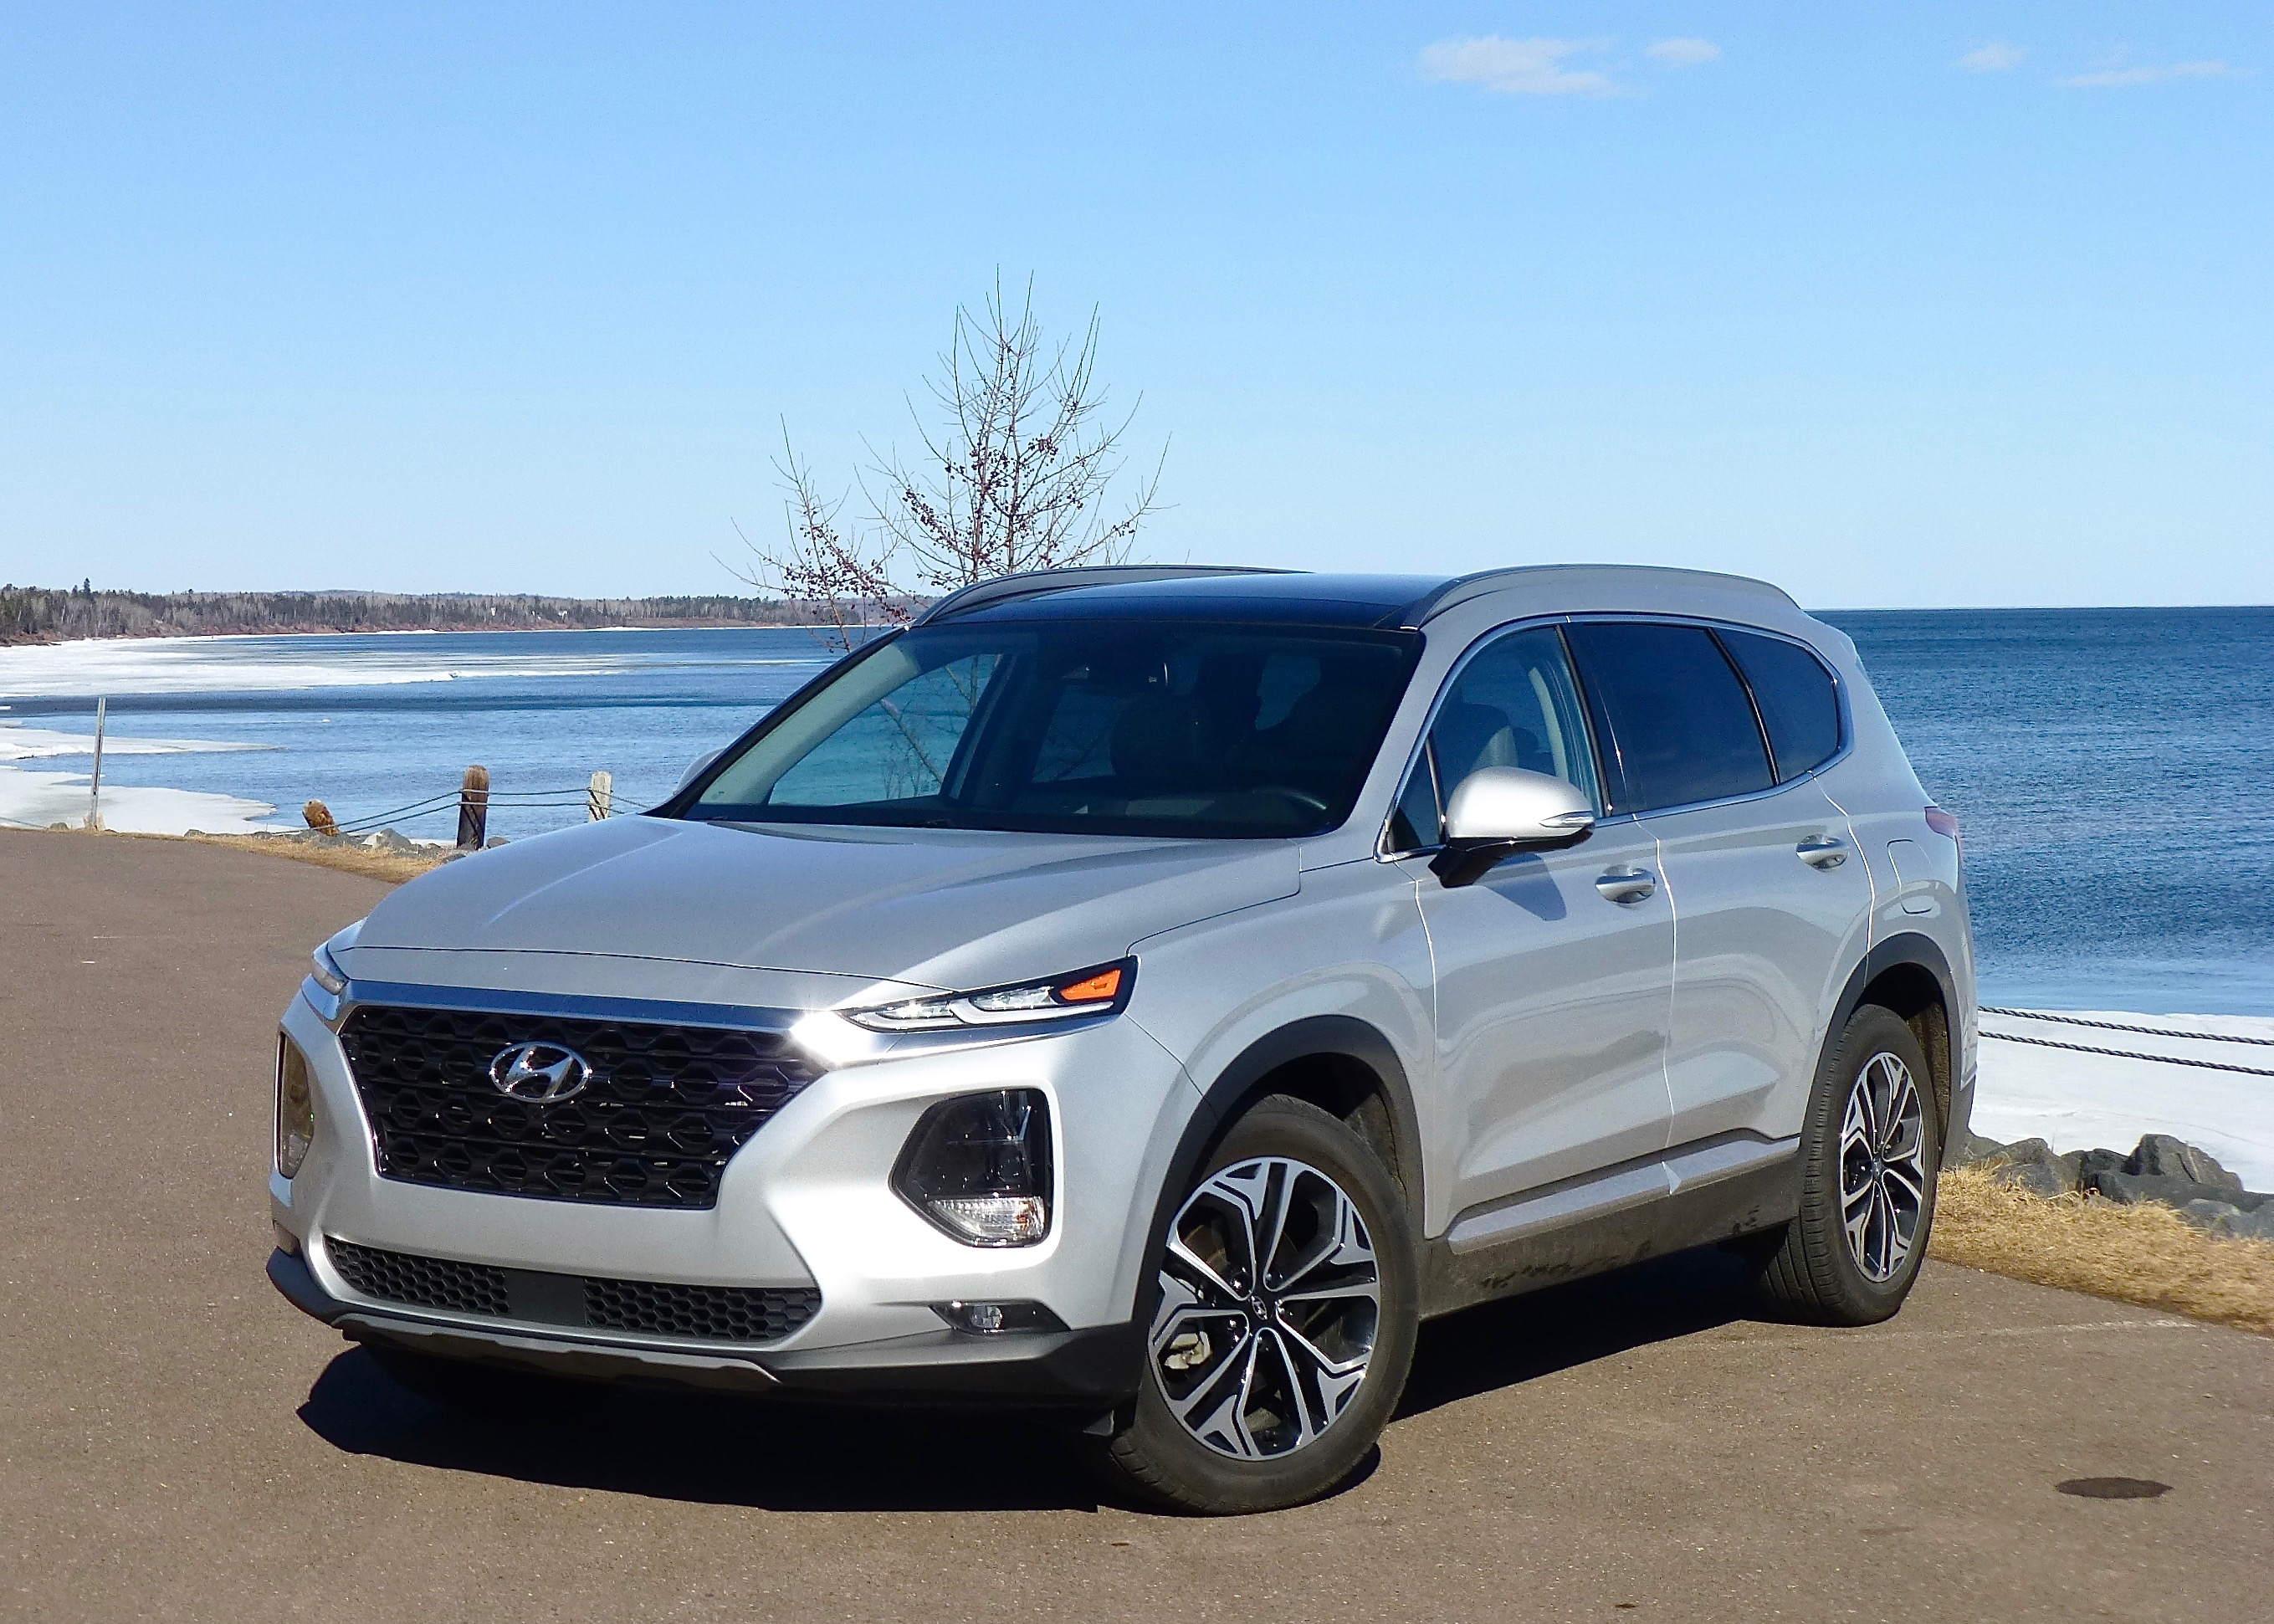 Stronger, stiffer platform underlines stylish new Hyundai Santa Fe and its bundle of technology.